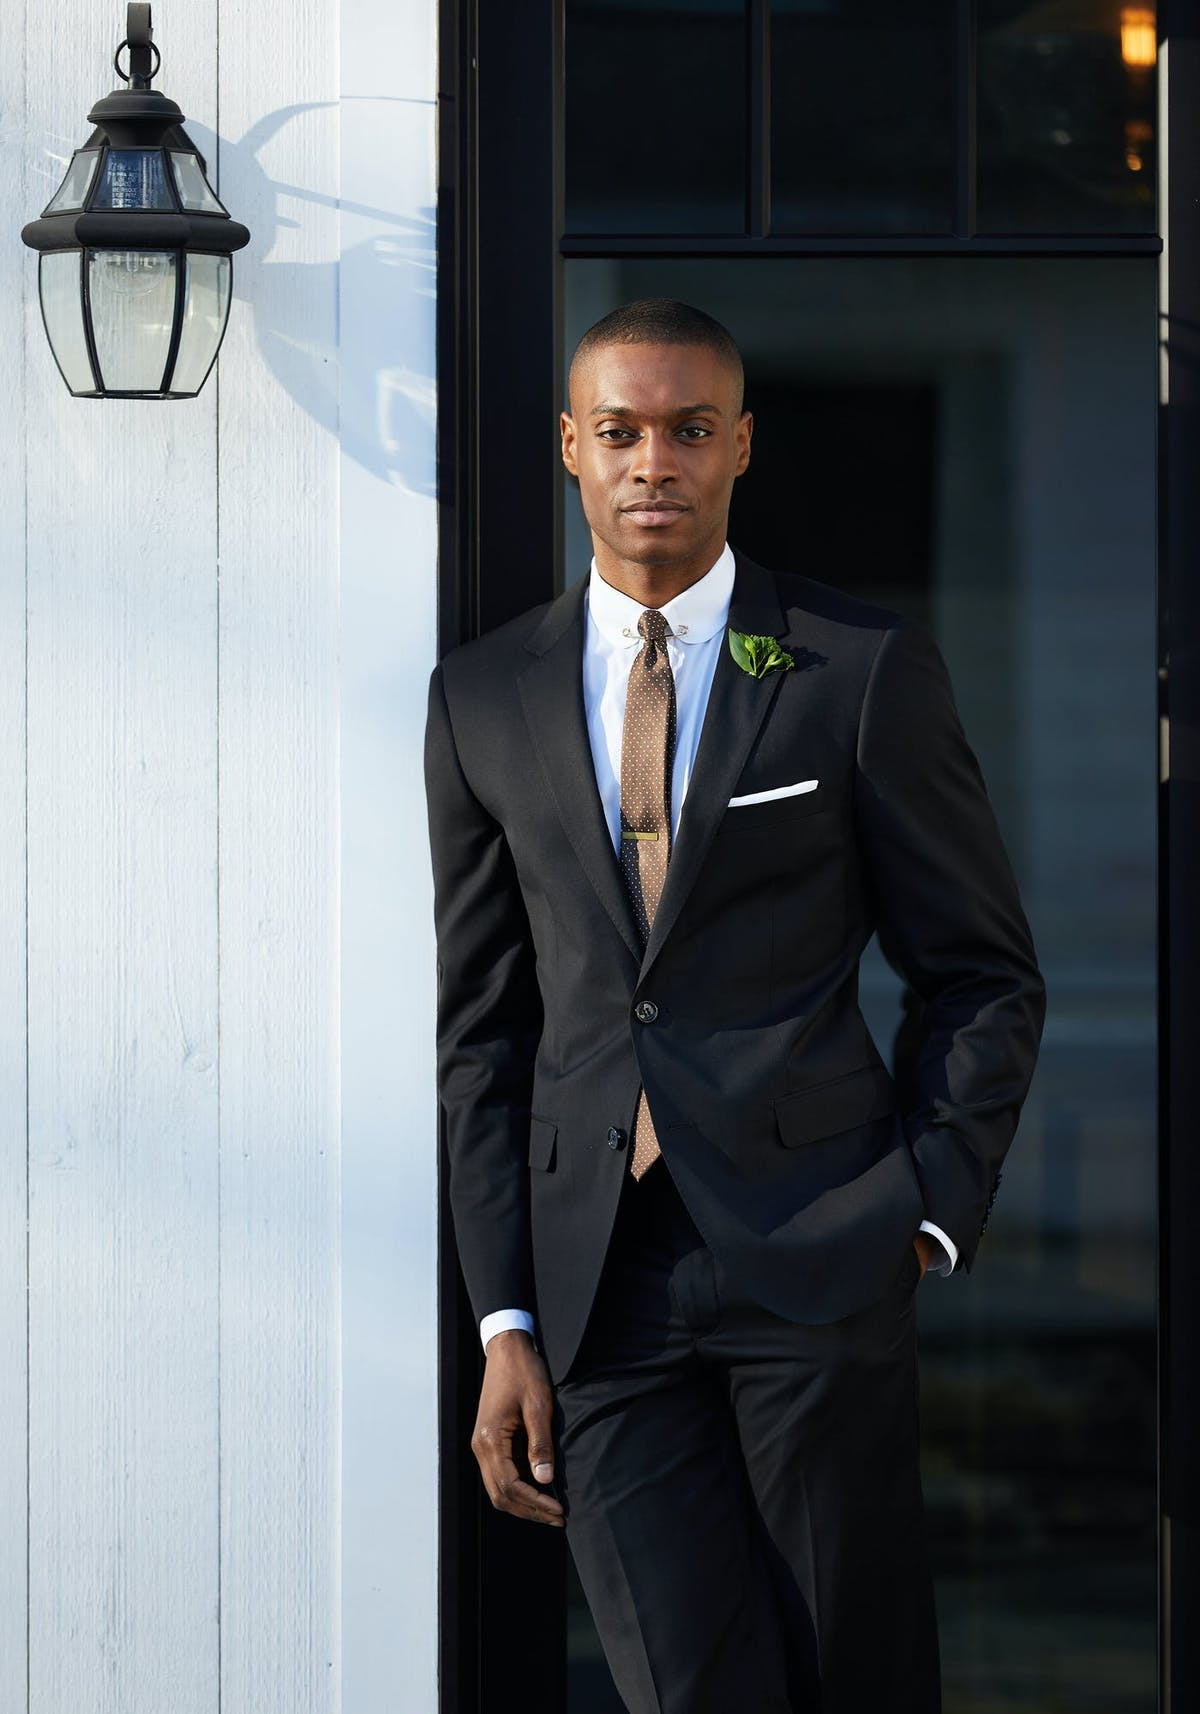 Difference between black tie optional and black tie